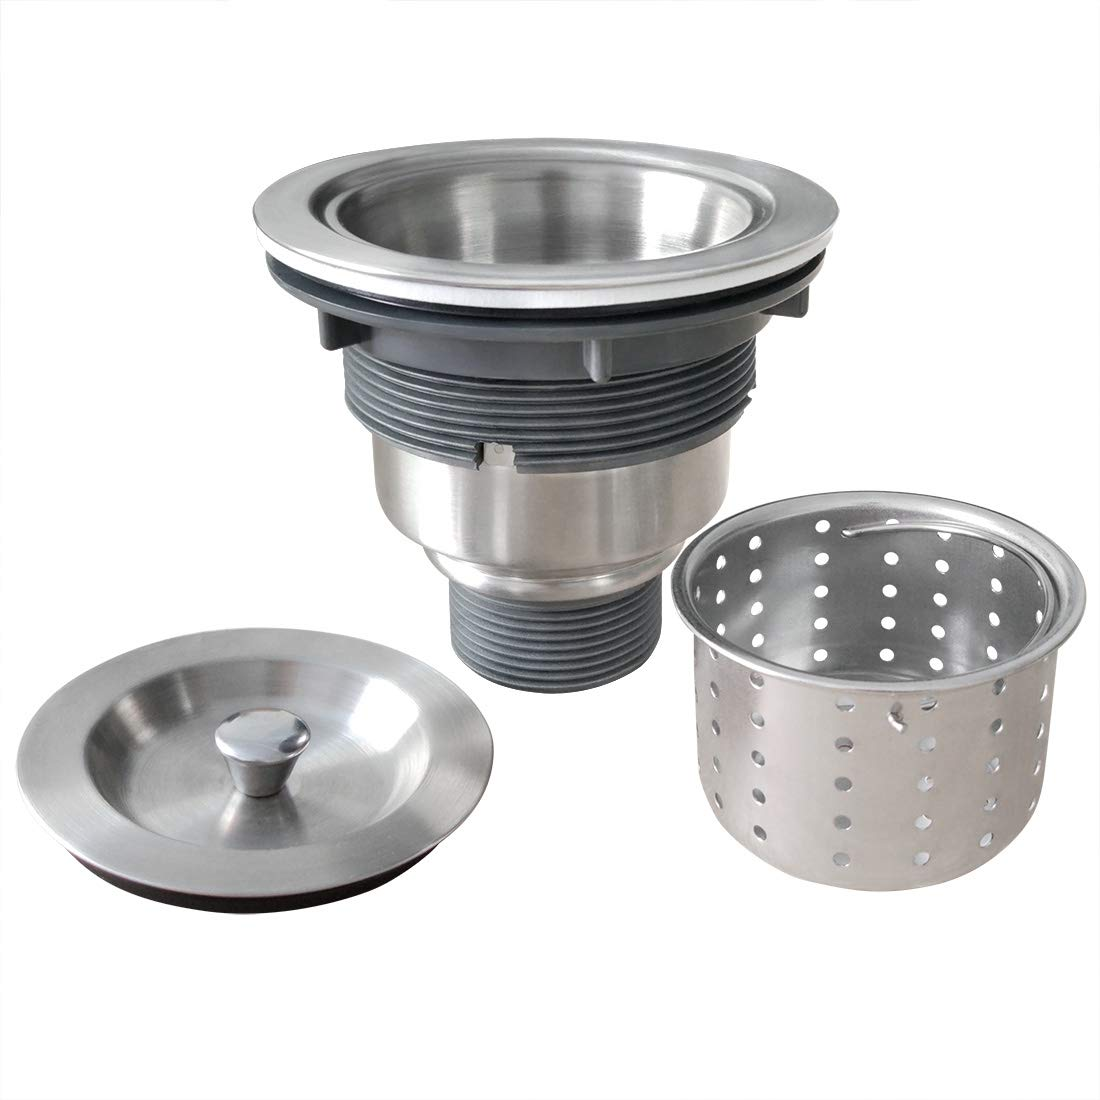 GZILA 3-1/2-Inch Kitchen Sink Strainer with Deep Waste Basket/Strainer Assembly/Sealing Lid, 304 Brushed Nickel Stainless Steel